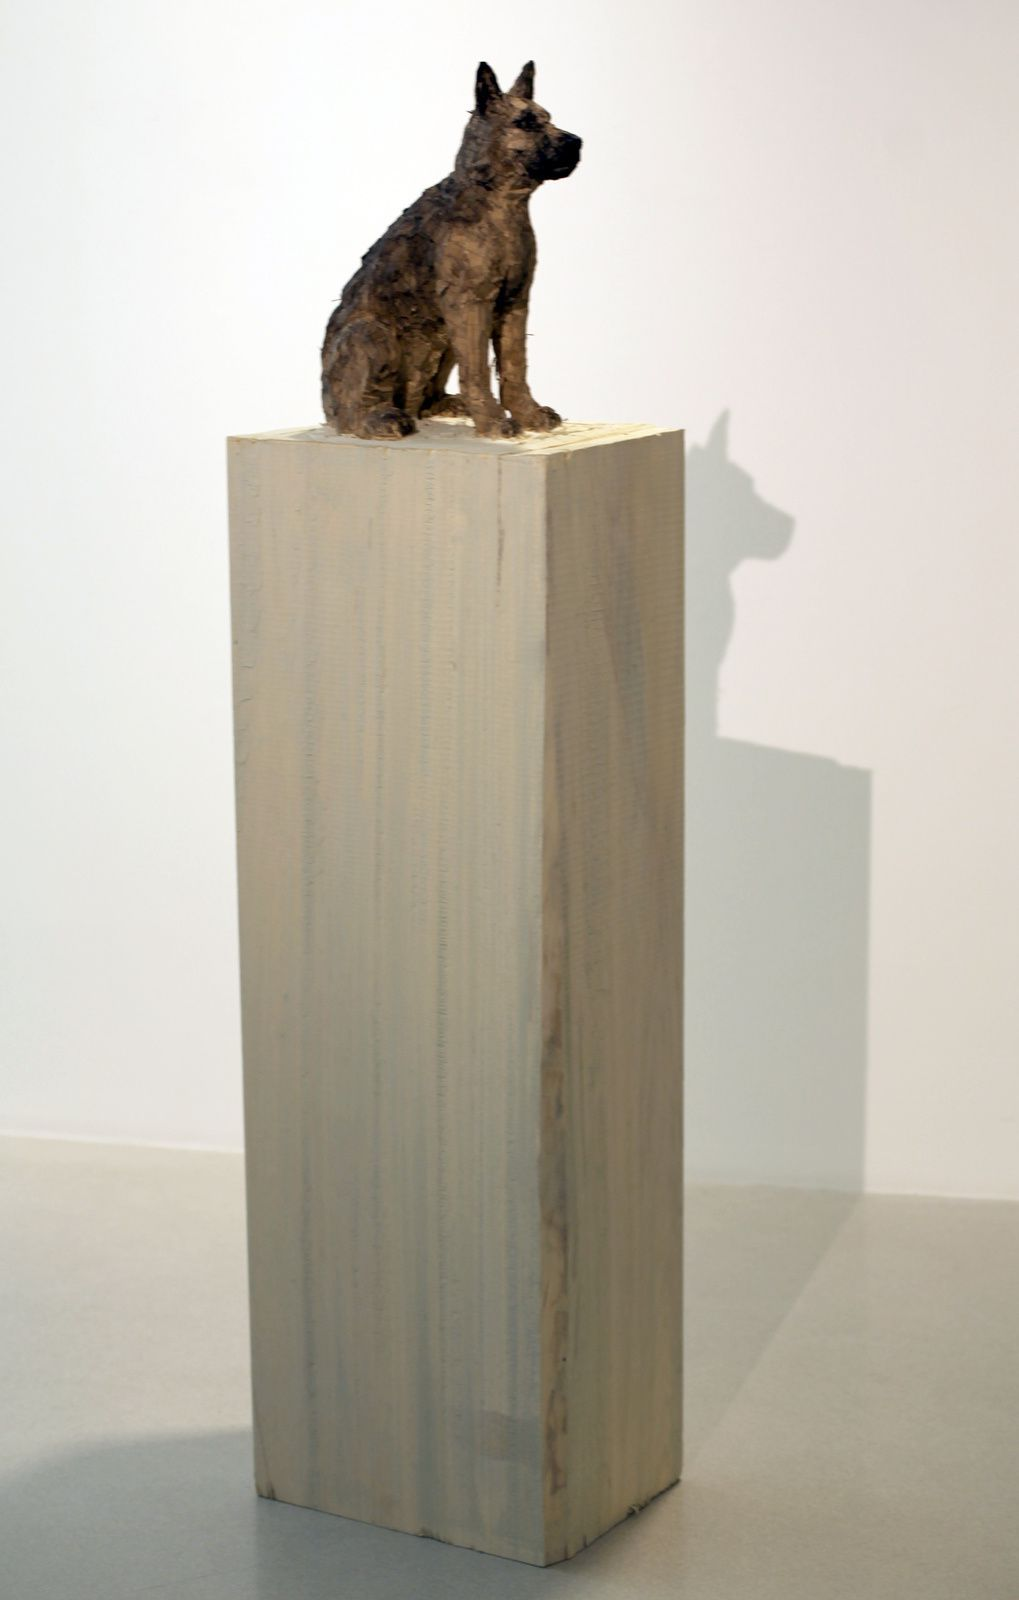 """Chien"", 2018 de Stephan BALKENHOL - Courtesy galerie Ropac © Photo Éric Simon"